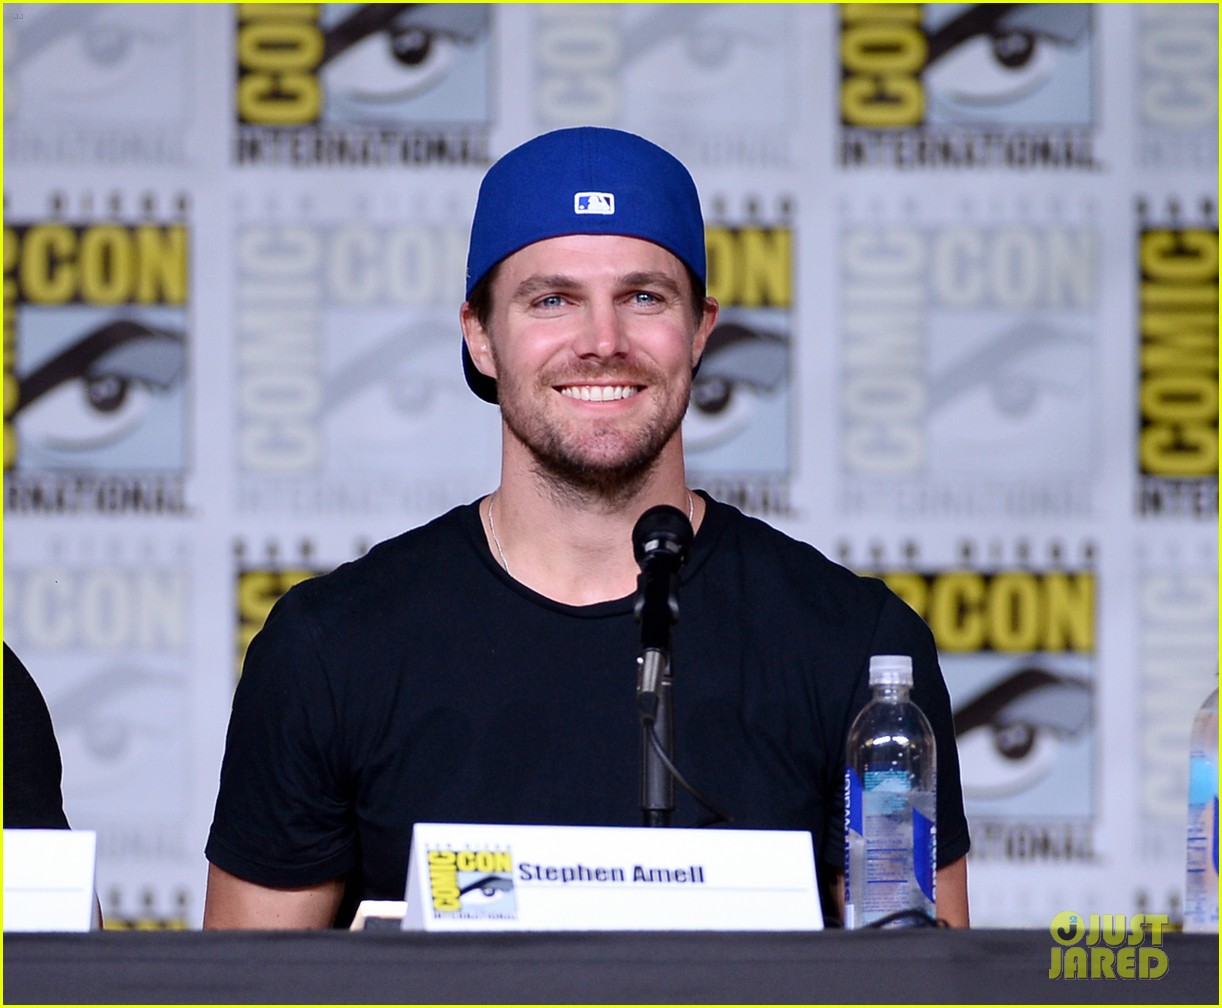 Bett Comic Stephen Amell Gives Comic Con First Look At Arrow Season 5